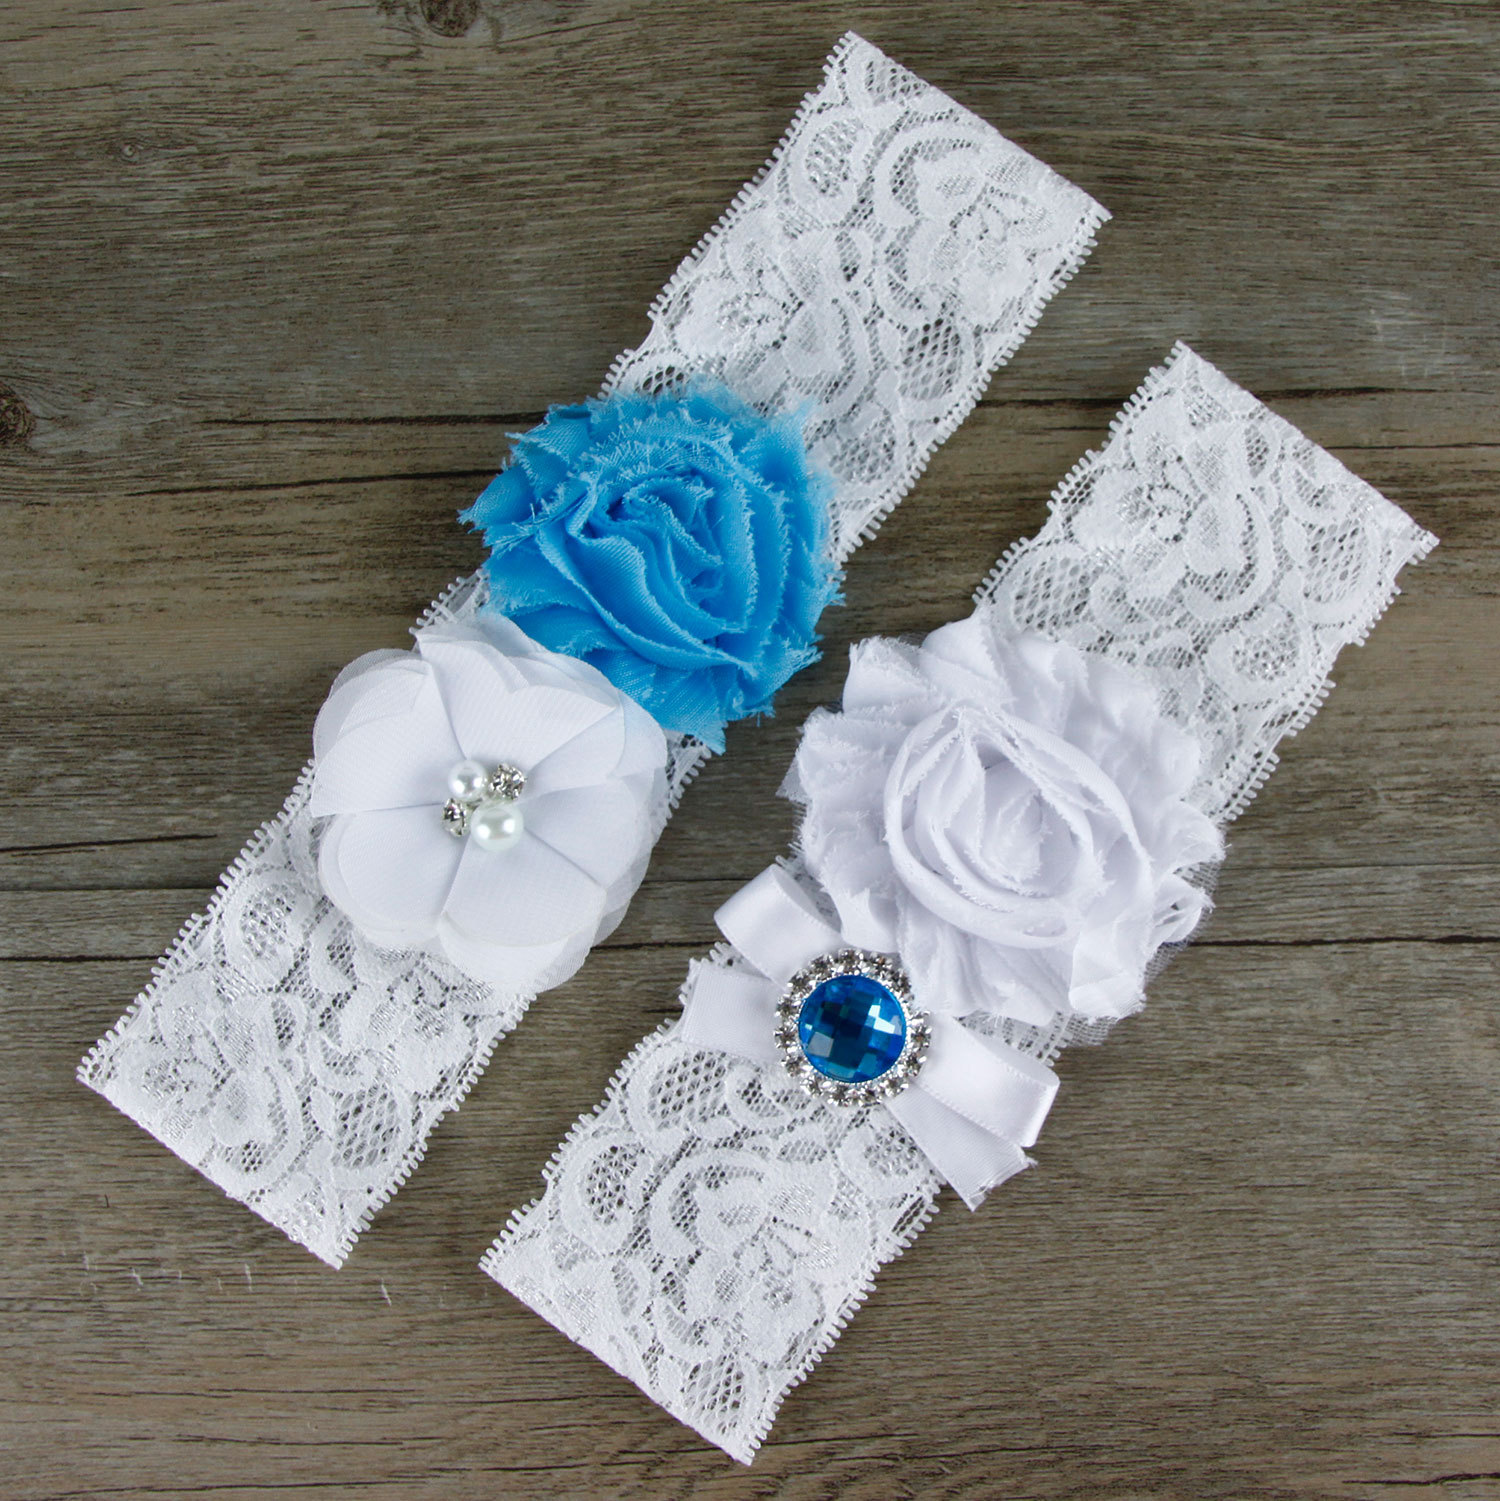 Wedding Leg Garter: Hot Sale 2Pcs Wedding Garter Set Lace Flower Bridal Garter